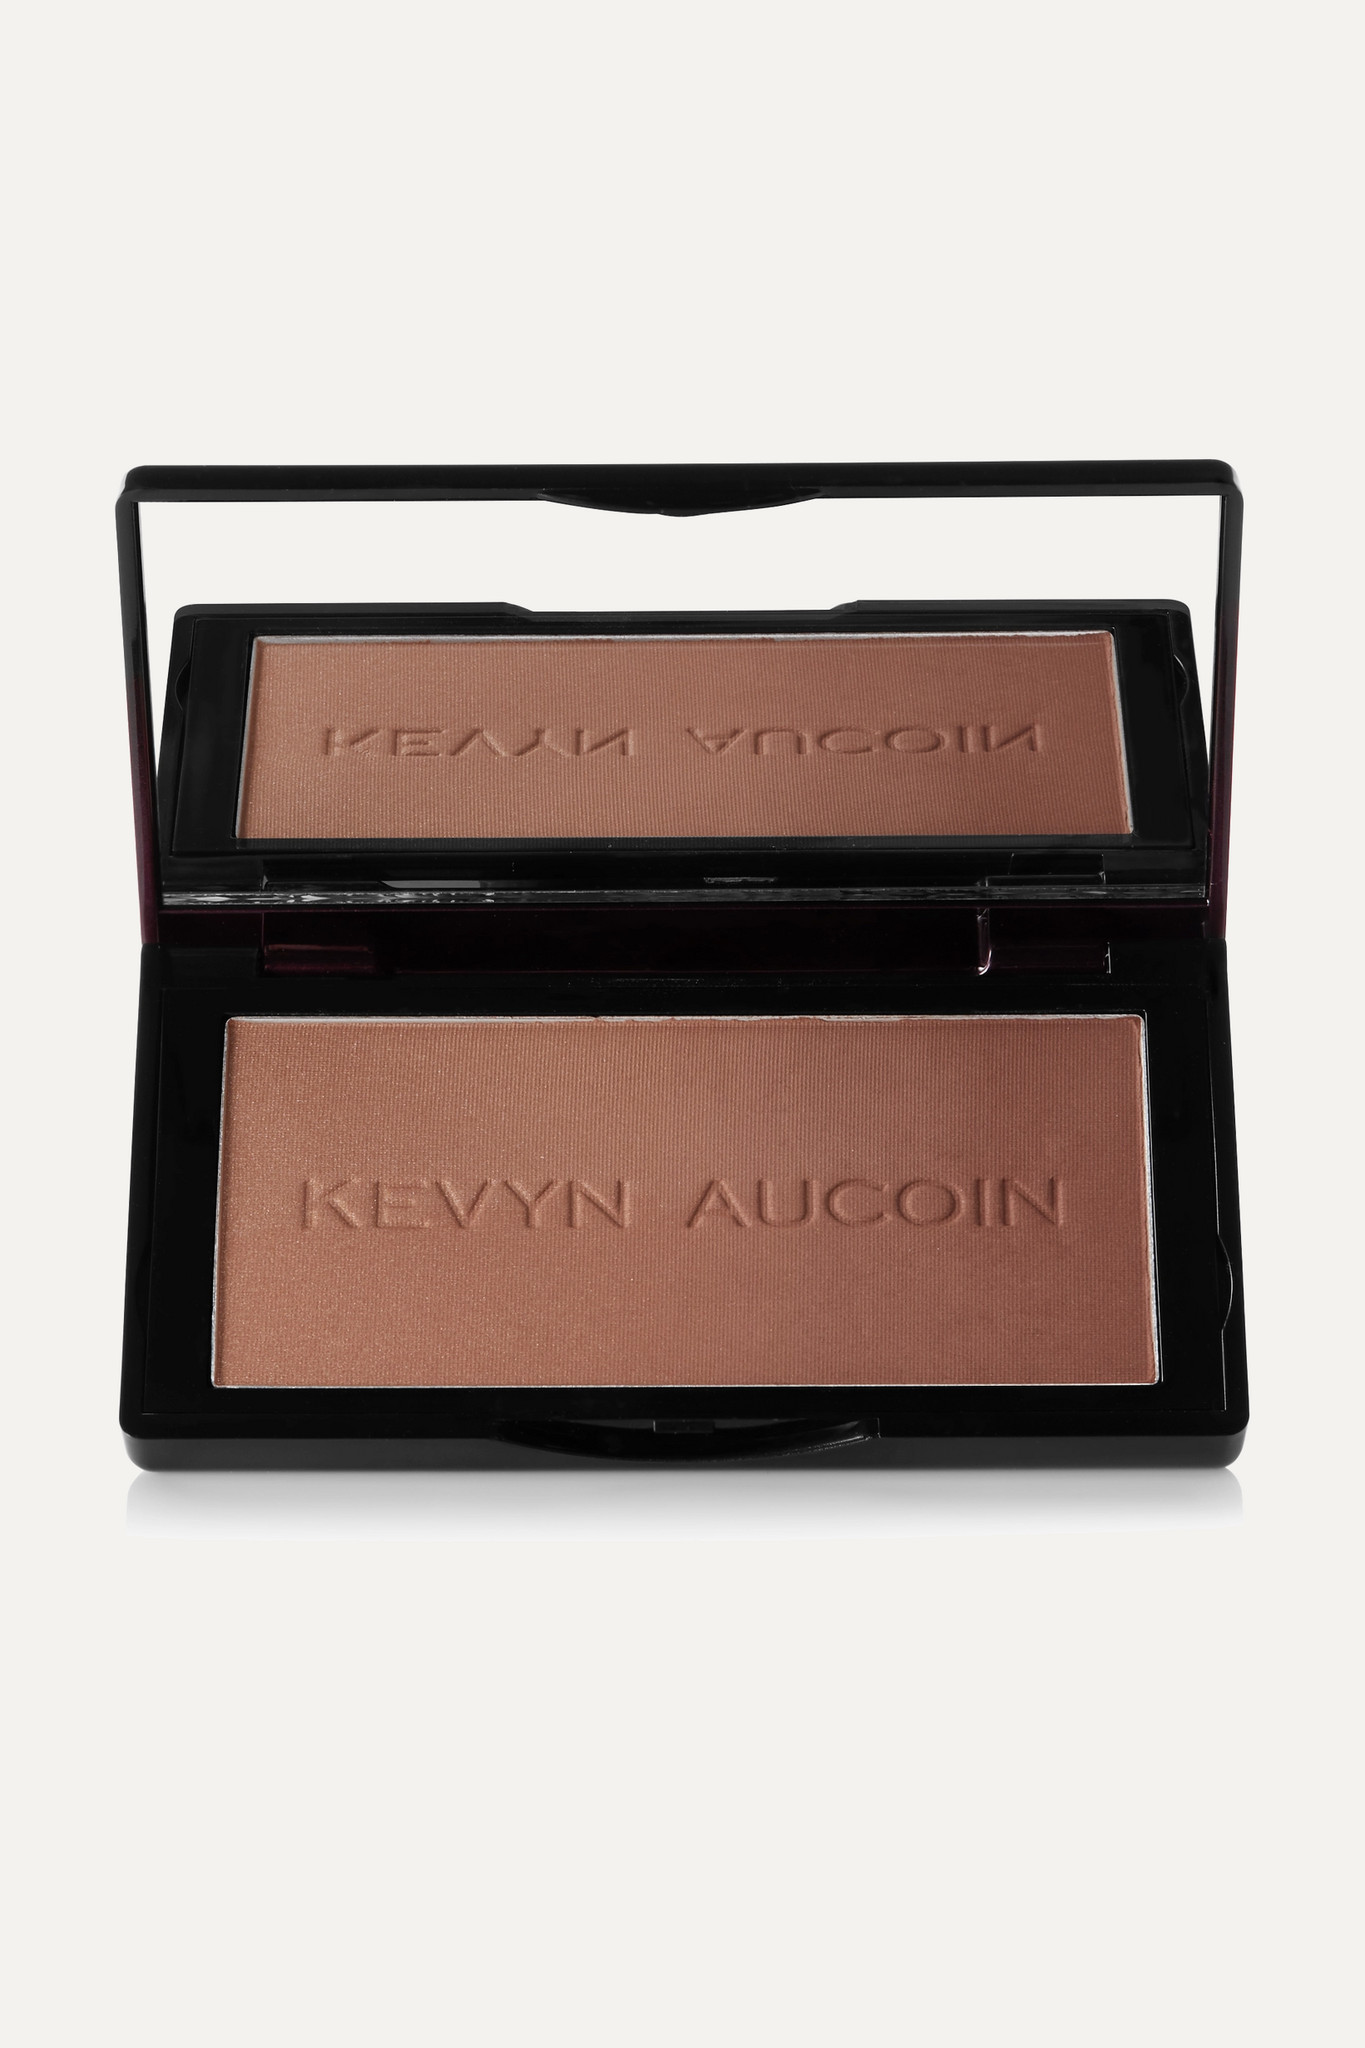 KEVYN AUCOIN - The Neo Bronzer - Dusk - Brown - one size